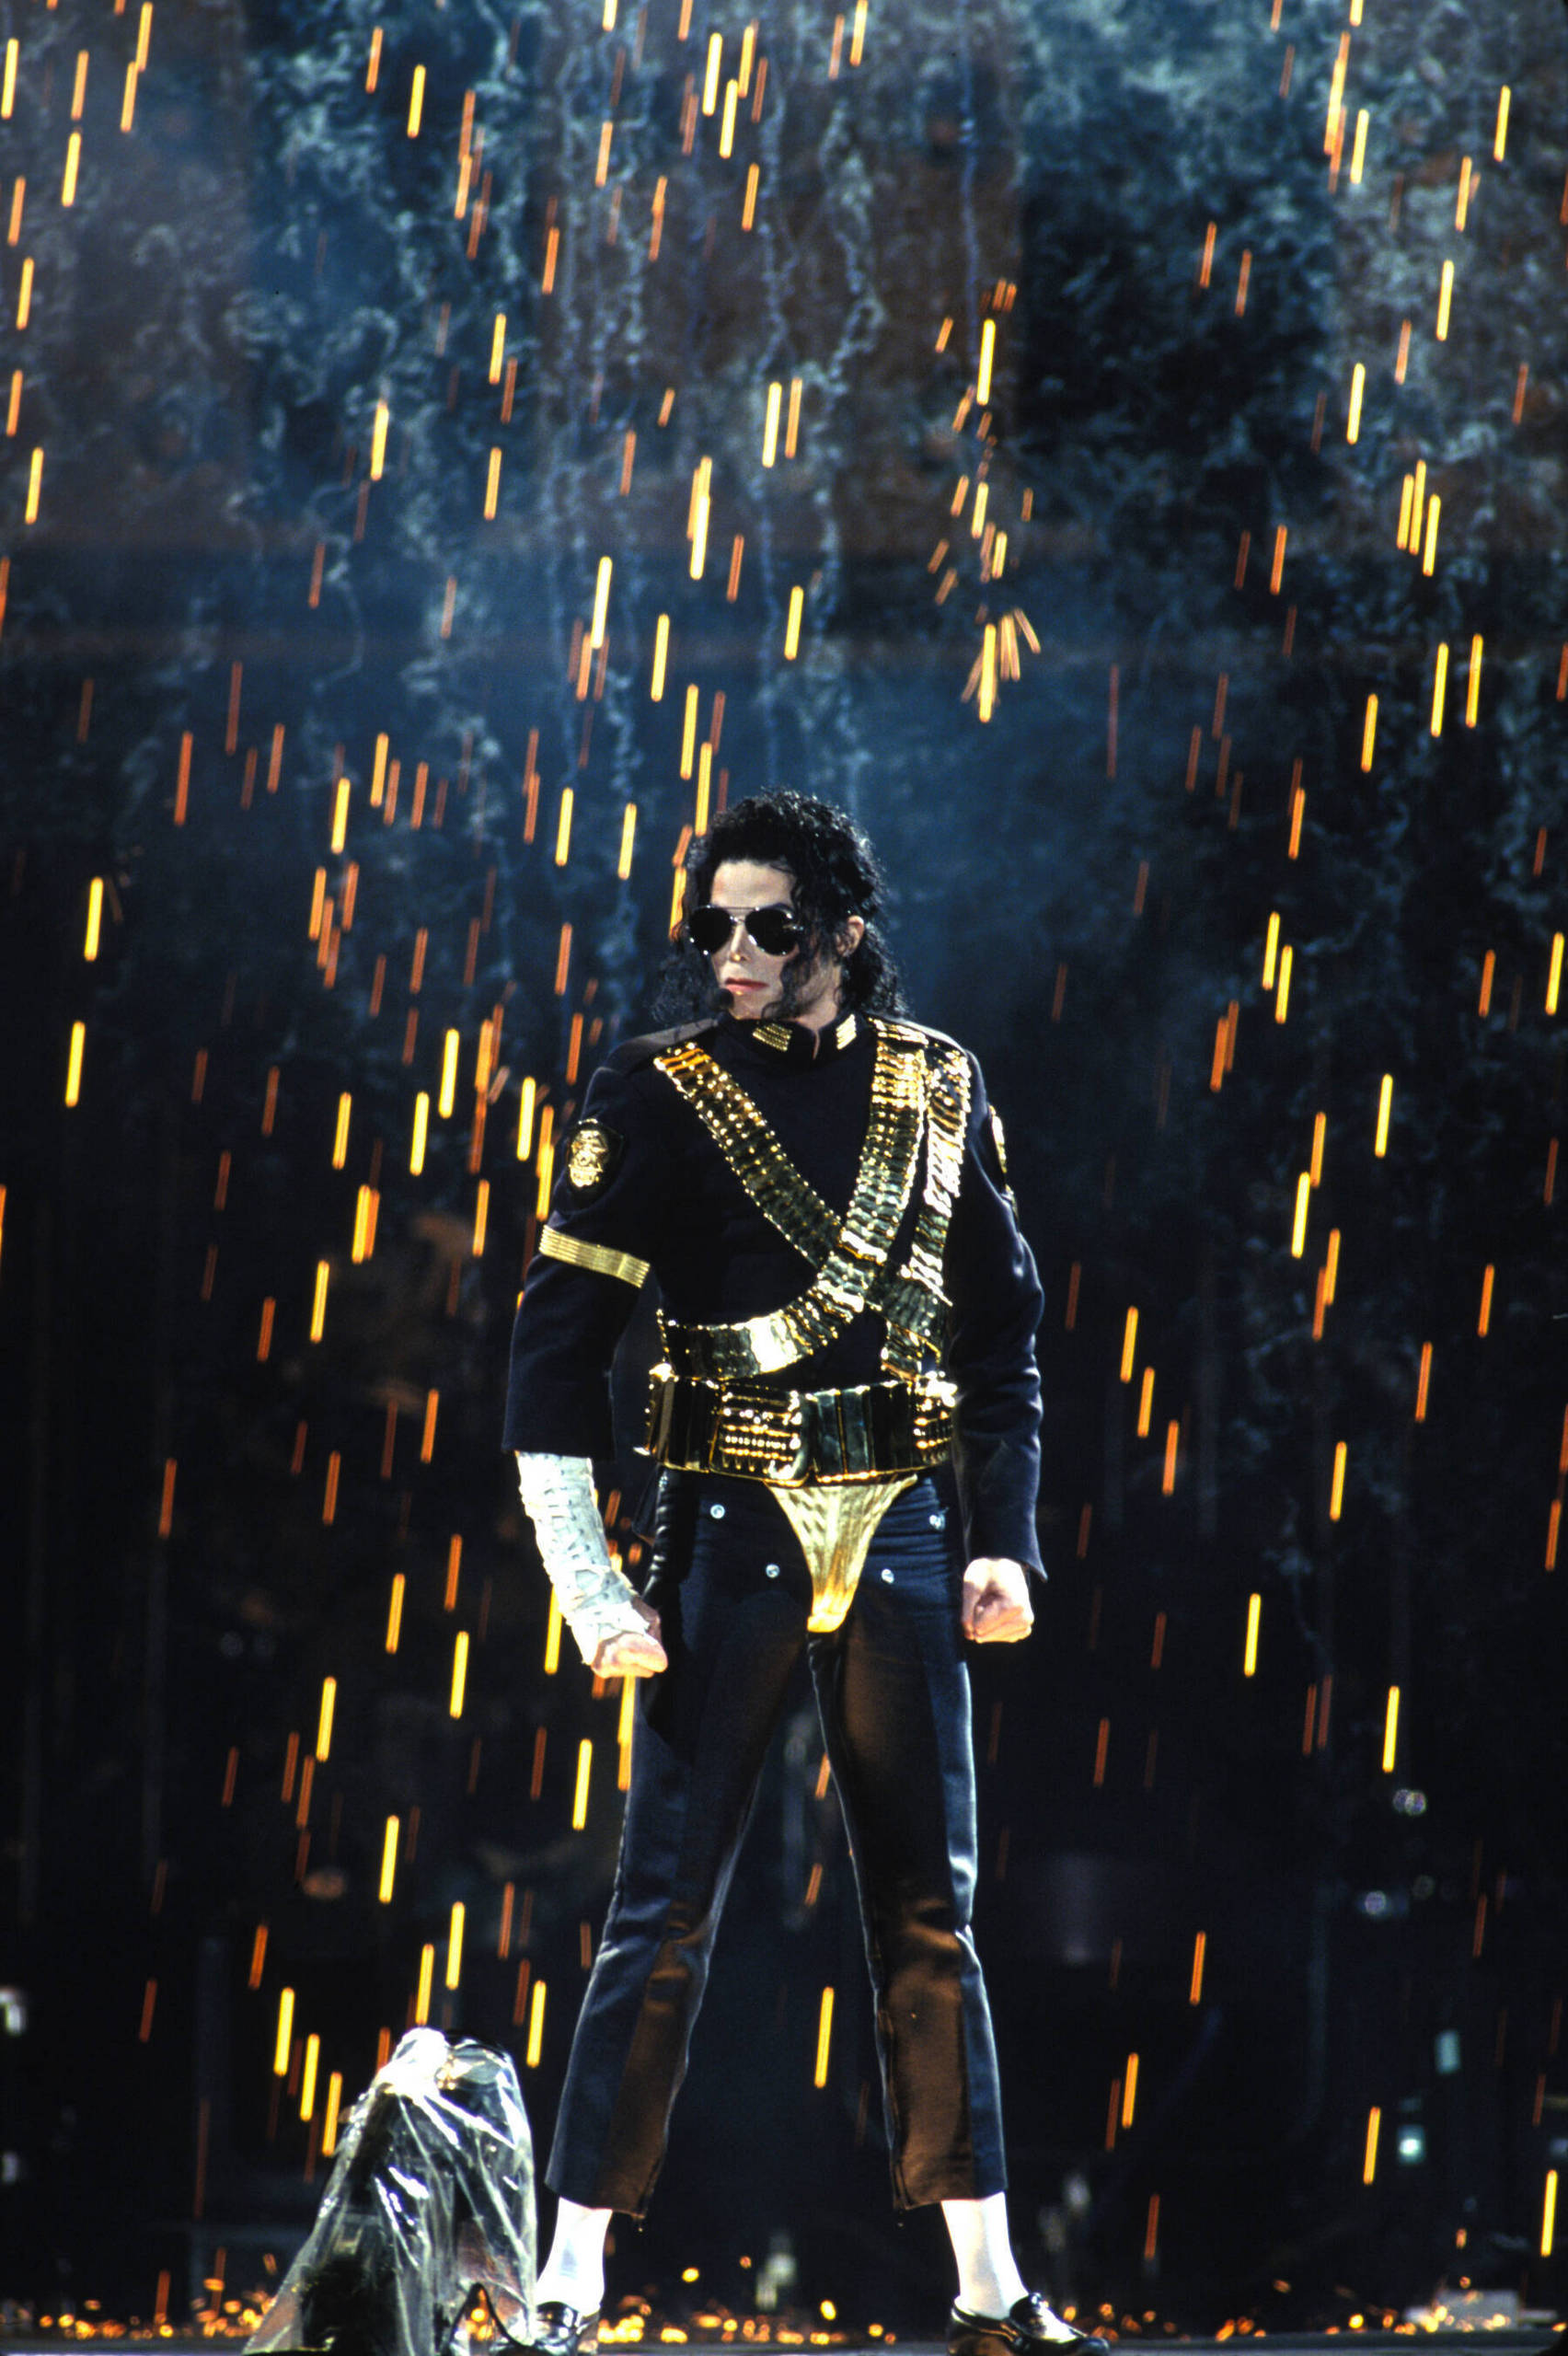 https://i0.wp.com/gomaworld.blog.so-net.ne.jp/_images/blog/_0b7/gomaworld/Dangerous-Tour-michael-jackson-7627214-1704-2560.jpg